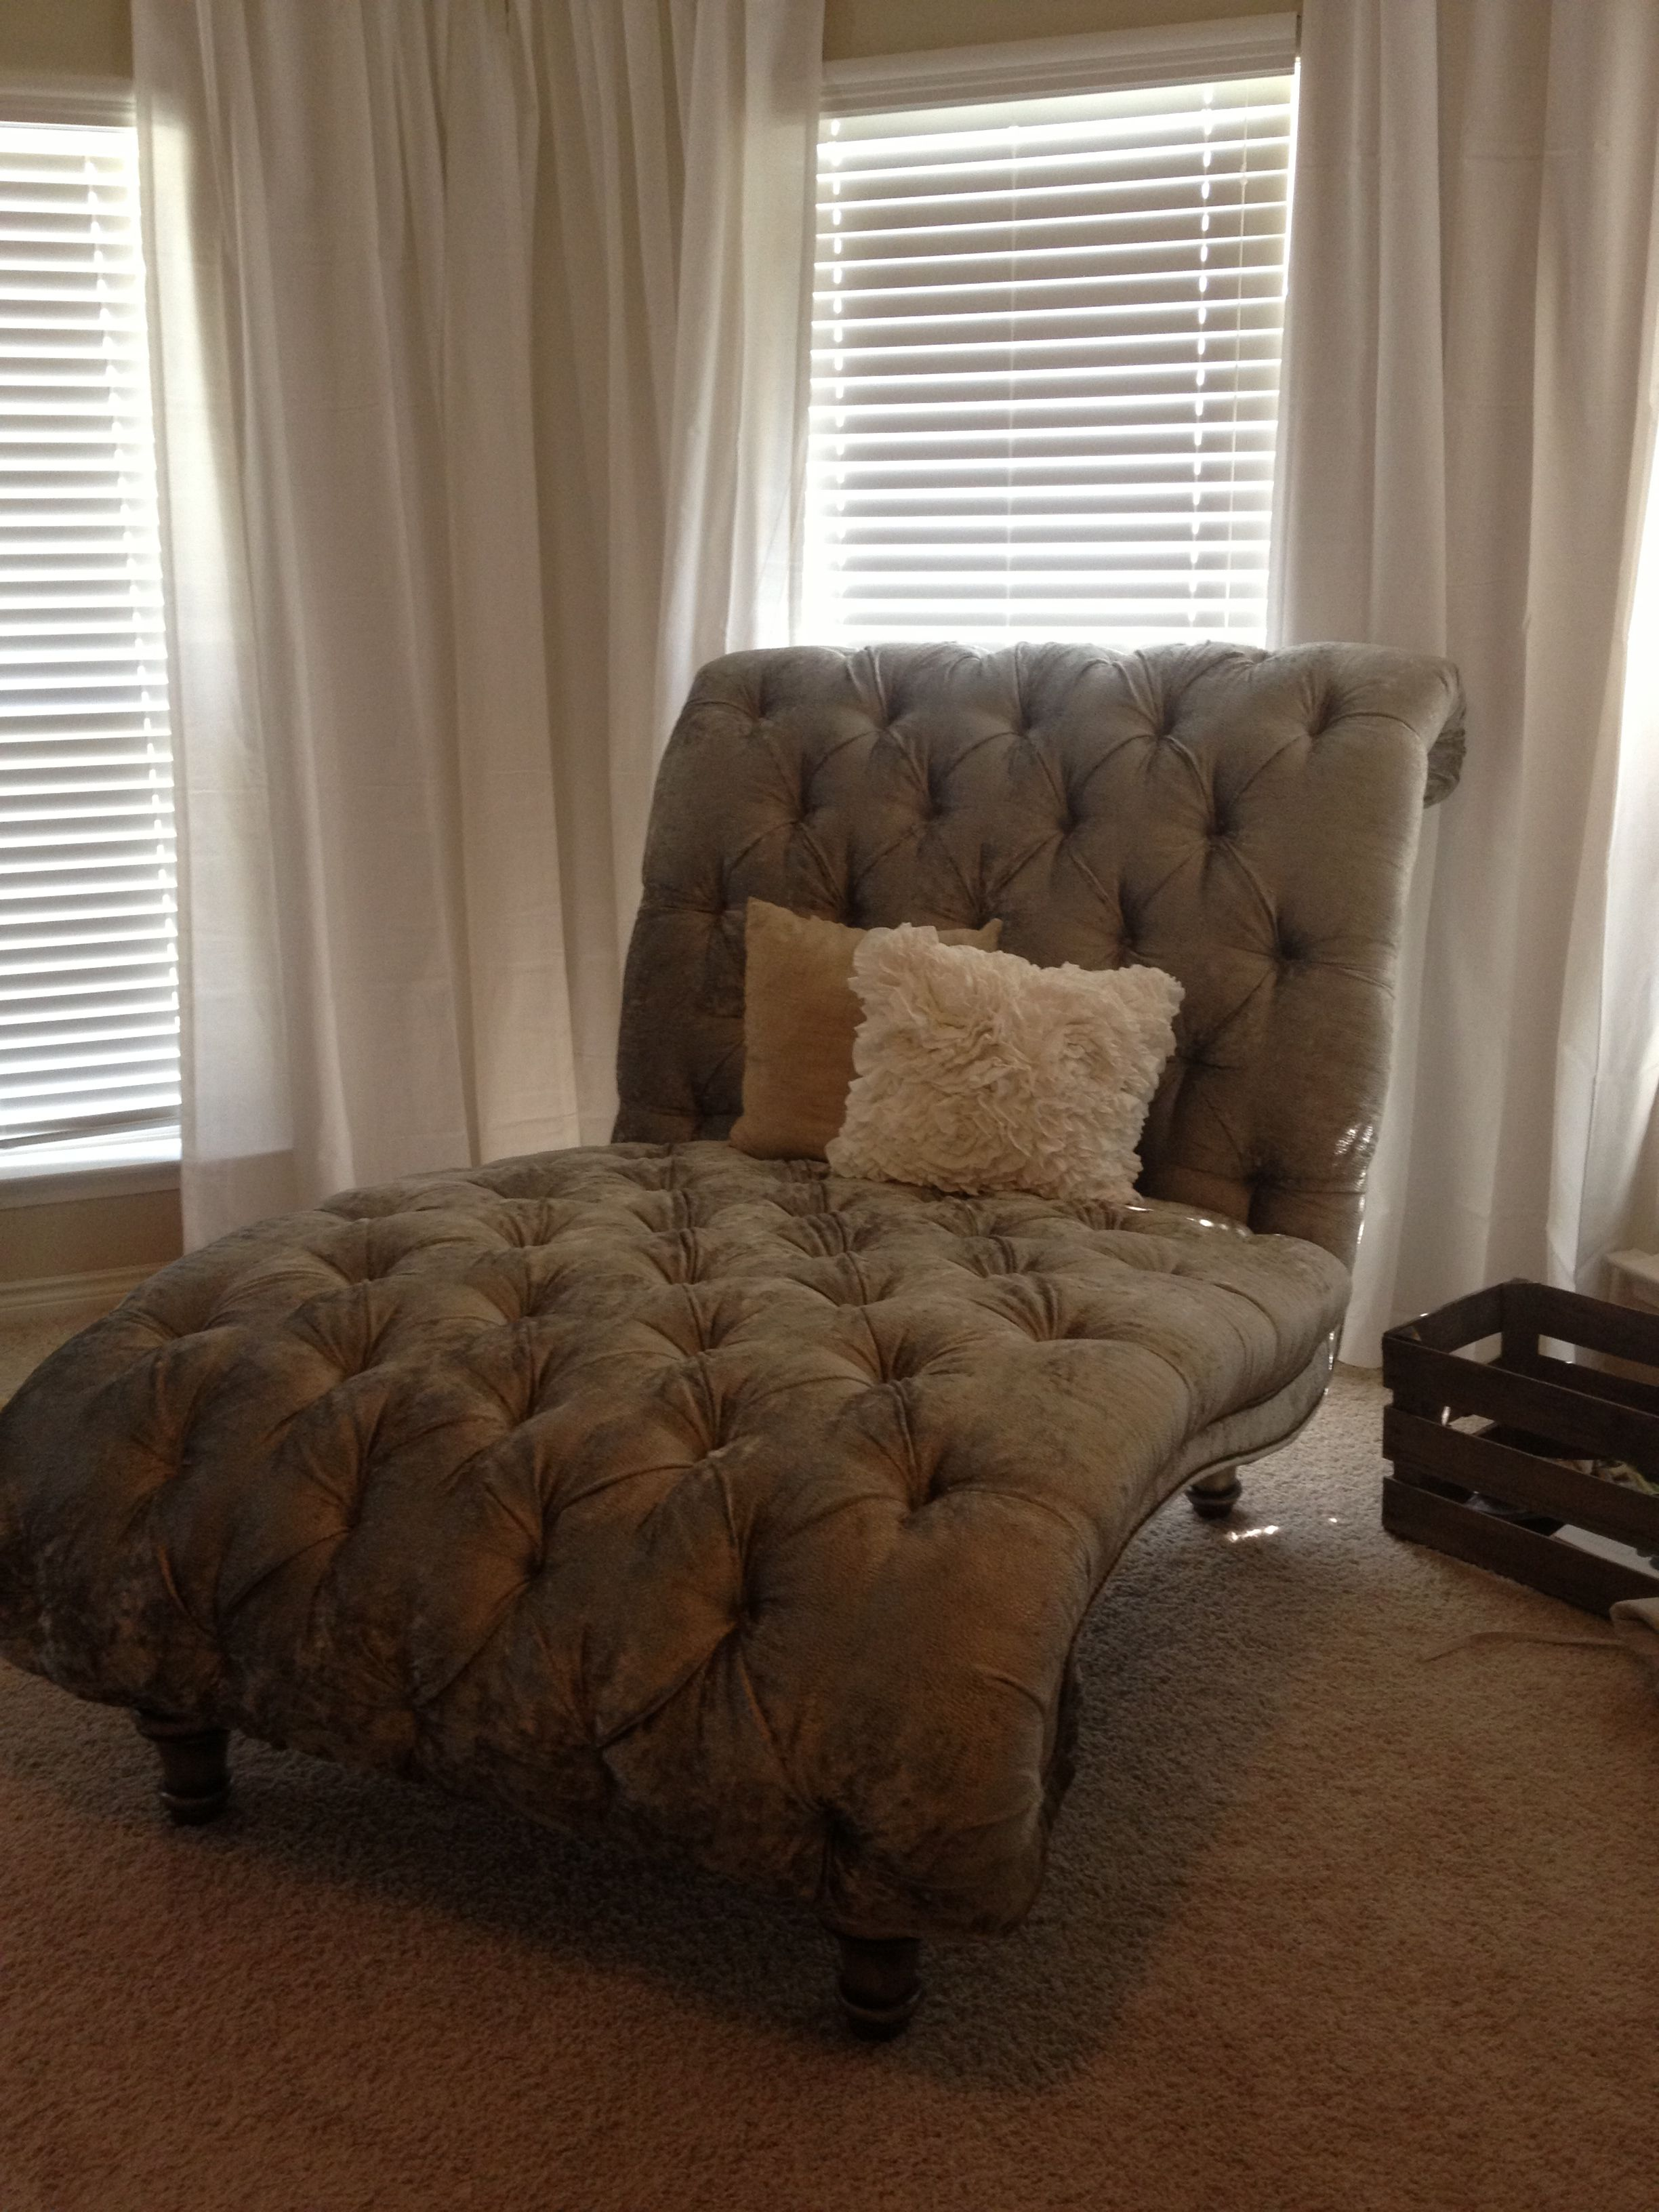 Master Bedroom Lounge Chair Tufted Double Chaise Lounge Chair In Our Master Bedroom Different